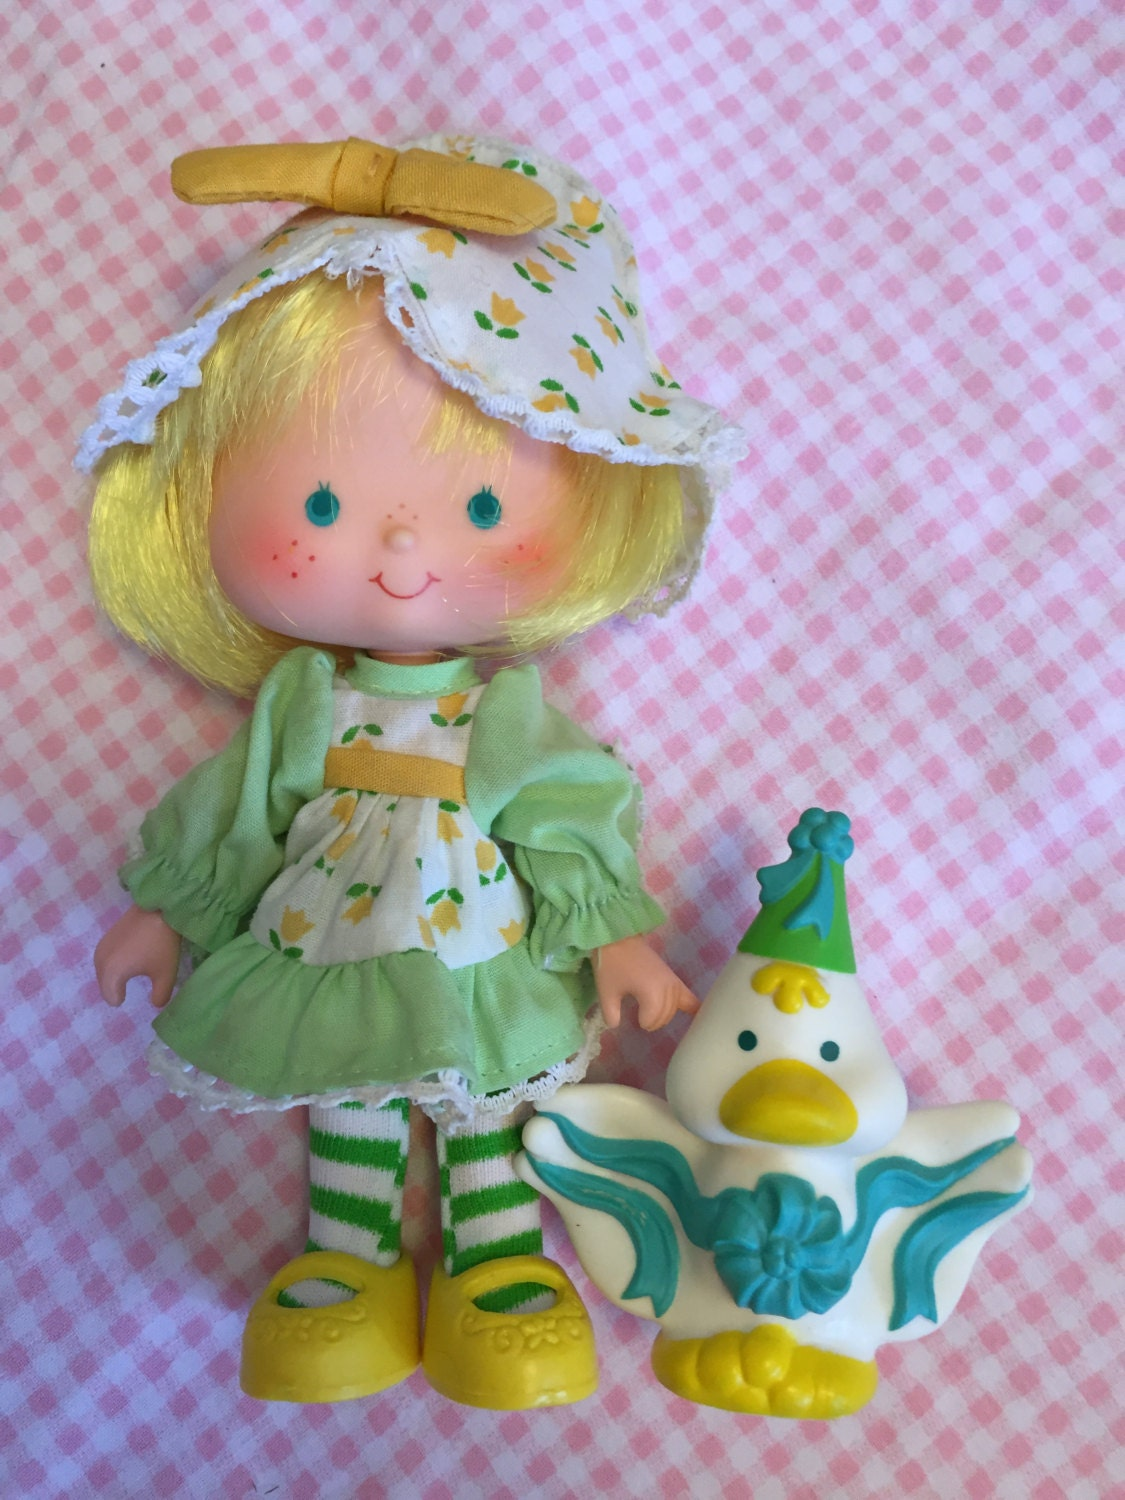 Strawberry Shortcake Doll Mint Tulip Party Pleaser with Marsh